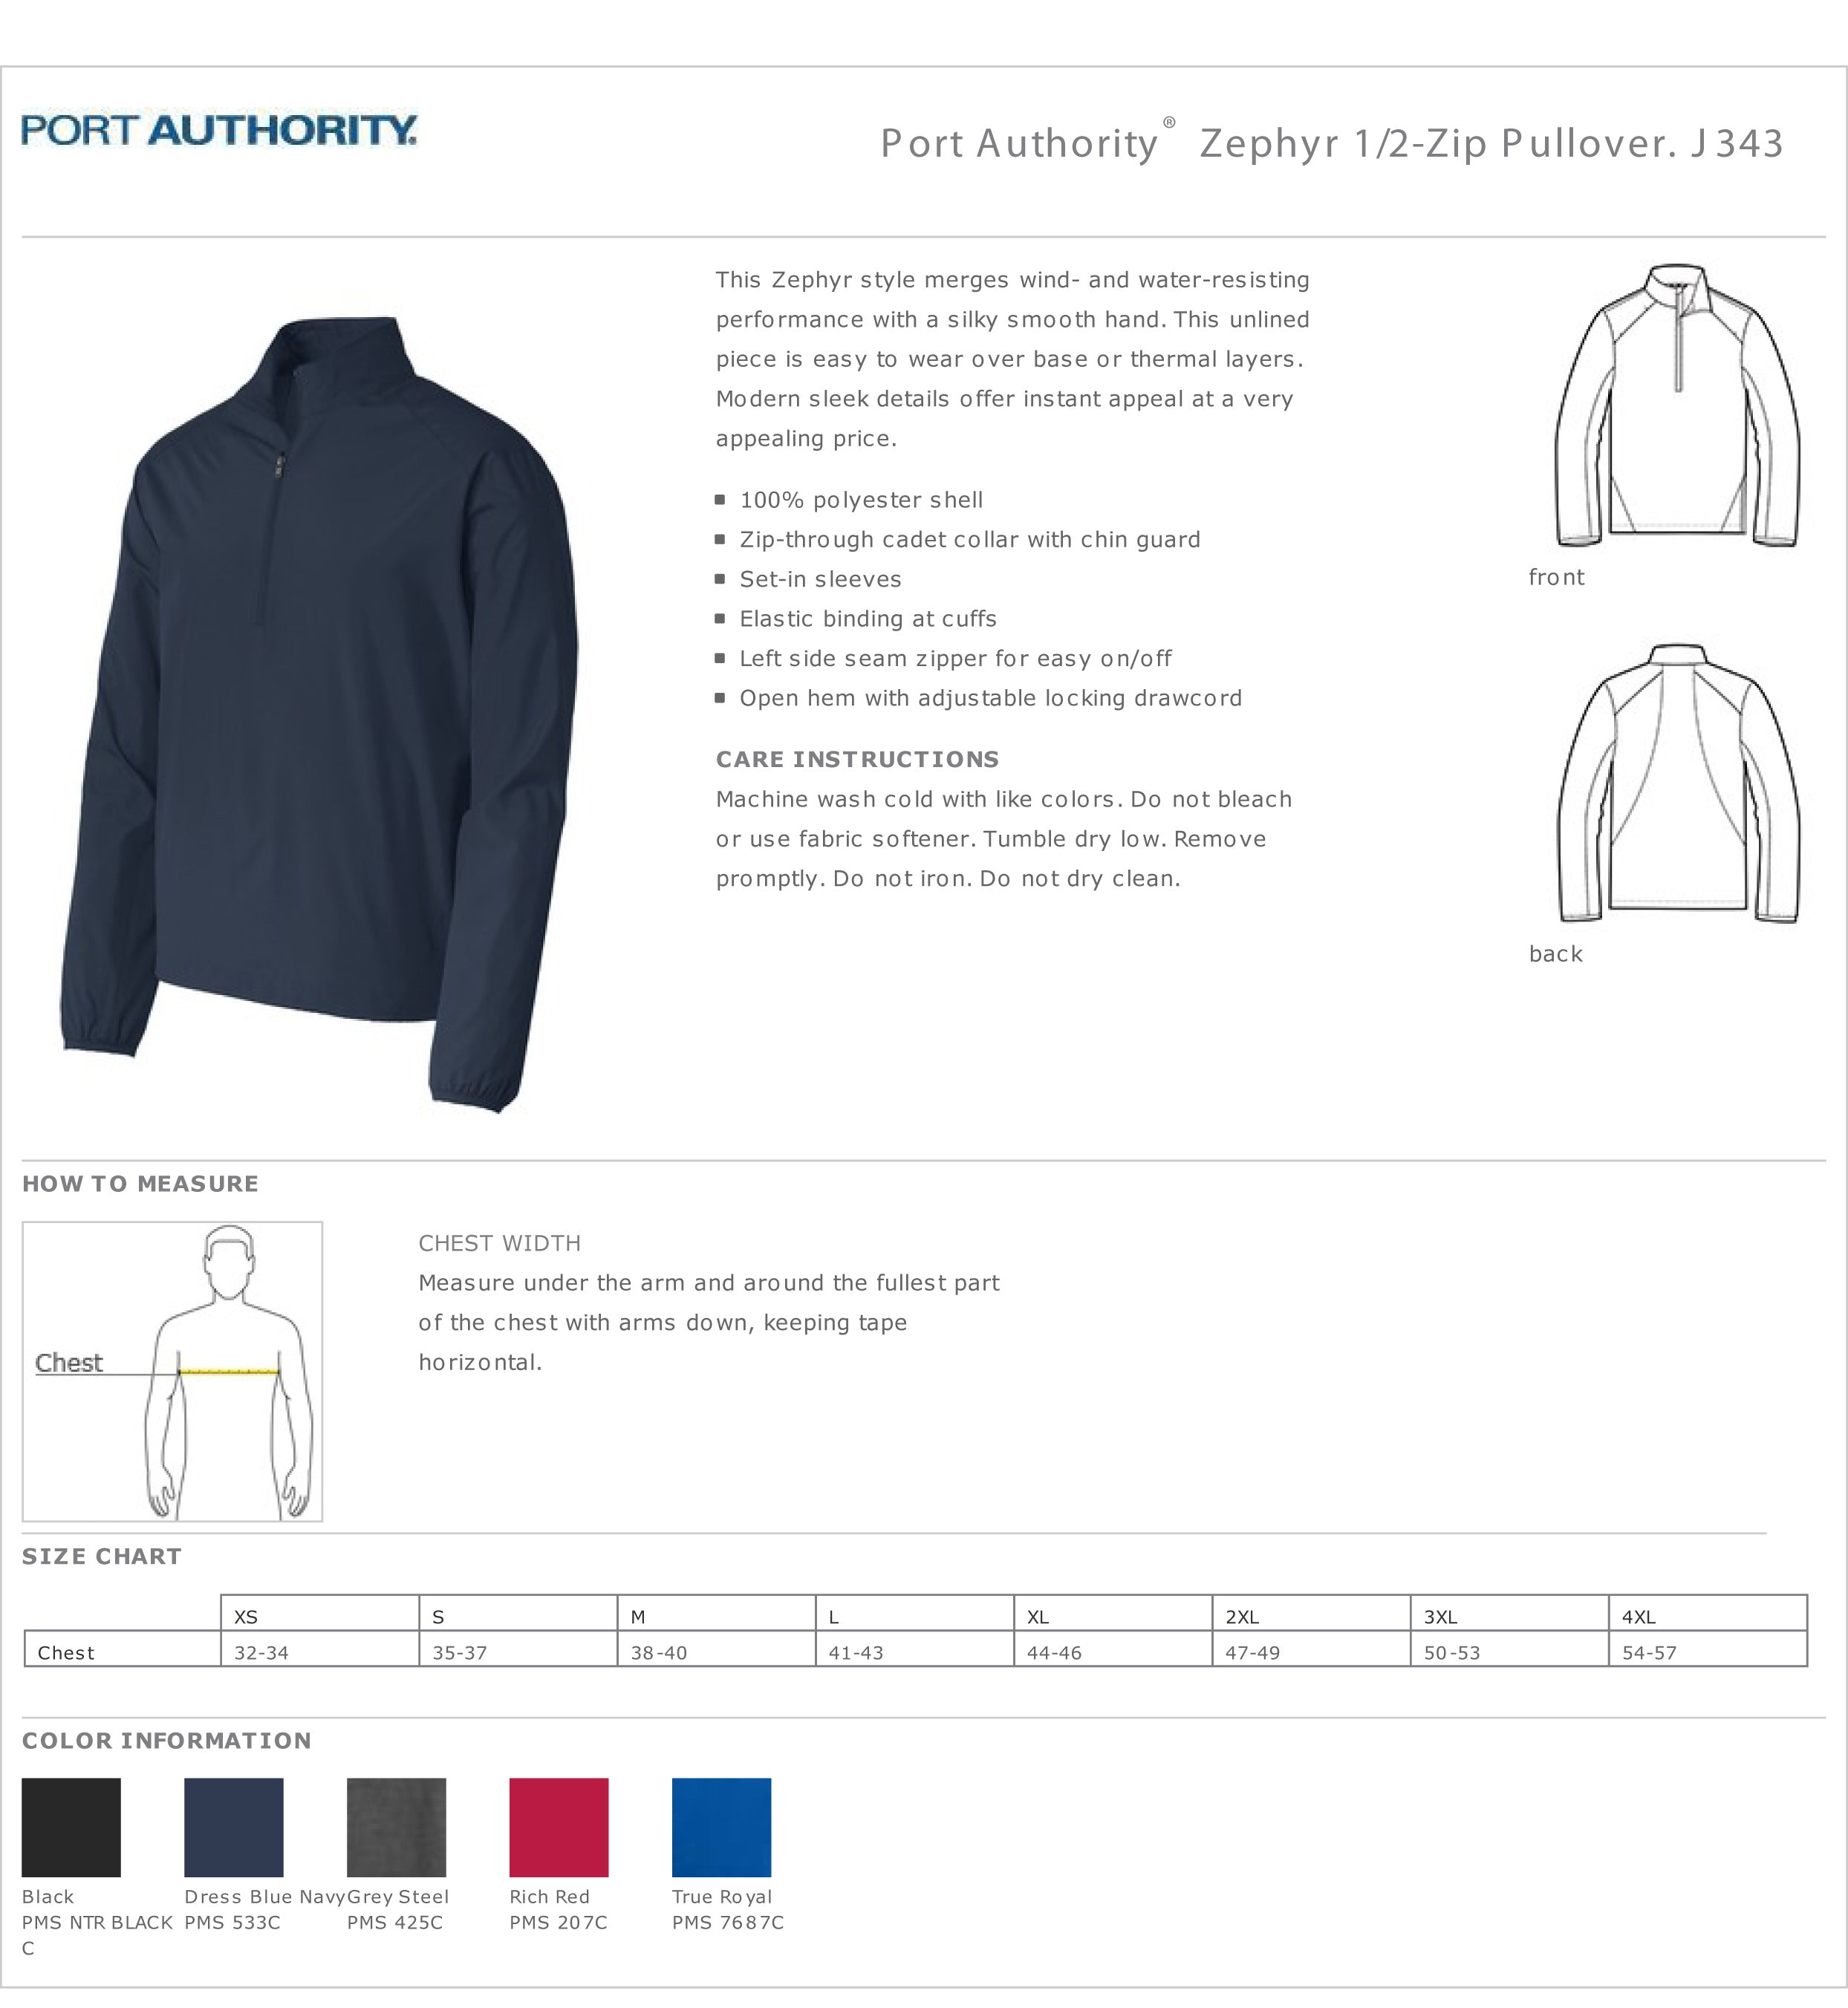 City of Watertown 1/2-Zip Pullover